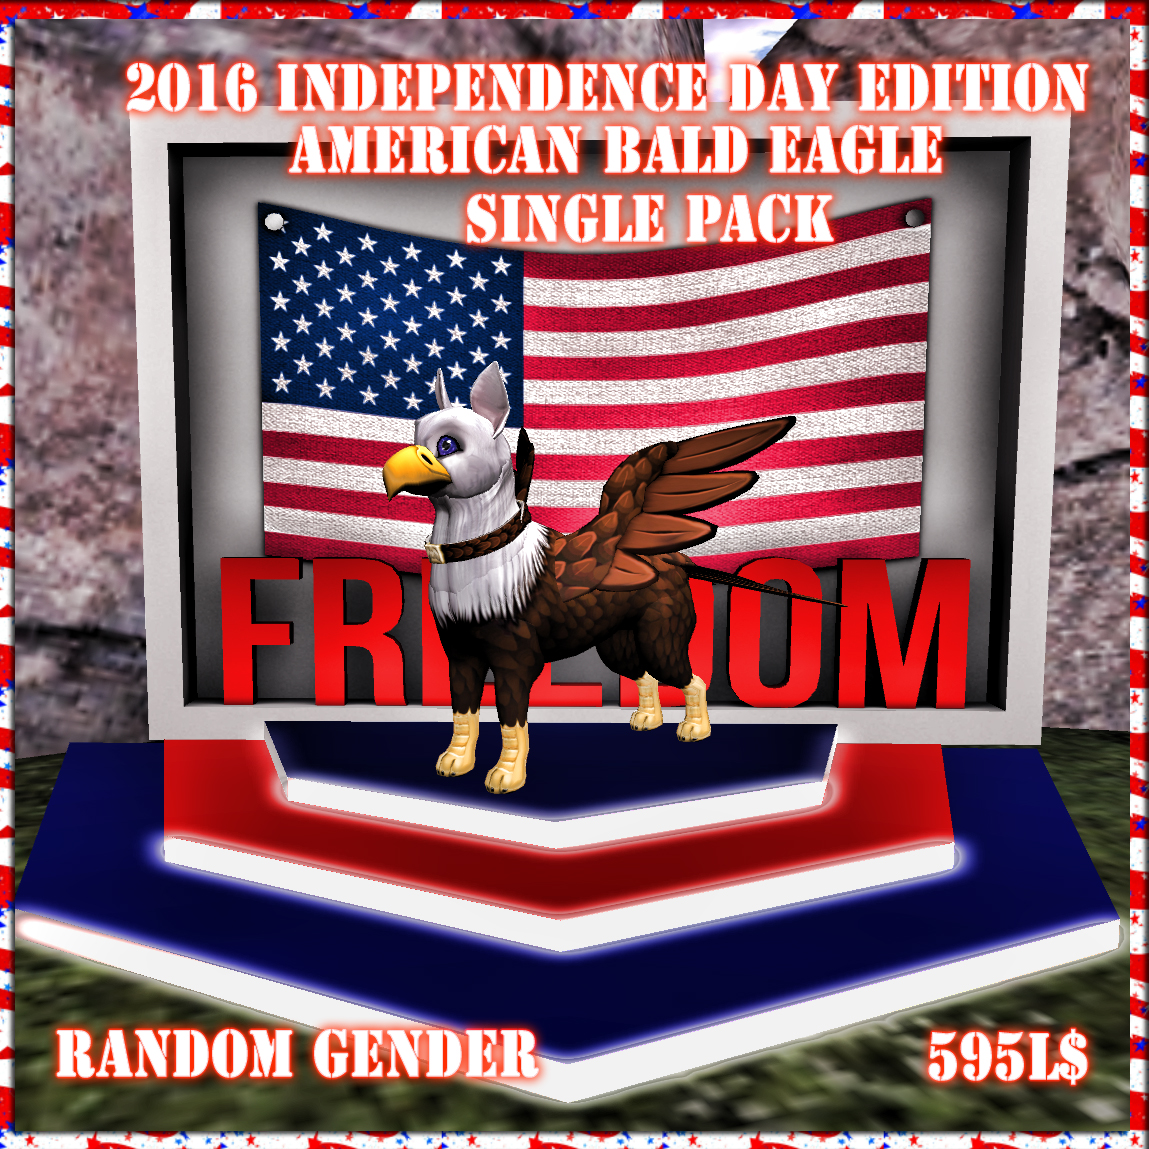 2016 Independence Day Edition American Bald EagleK9